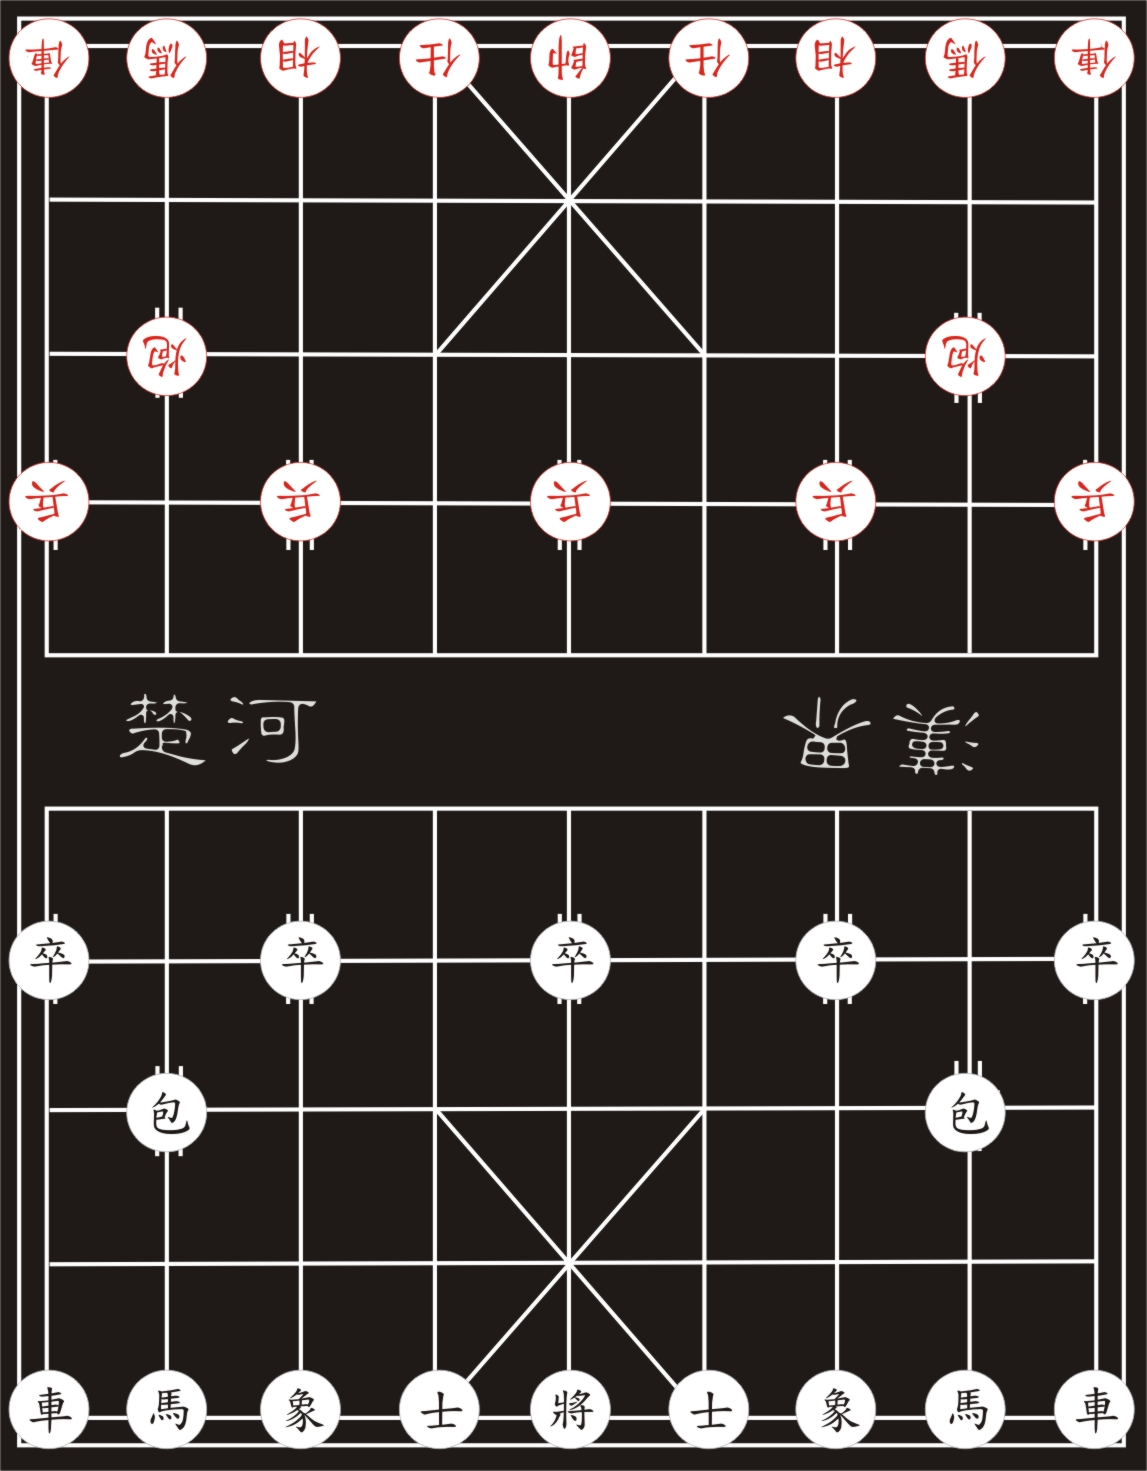 Chess Board Setup Diagram Jeep Wrangler Wiring Diagrams The Taiwan Adventure Taiwanese Lifestyles 象棋 Chinese